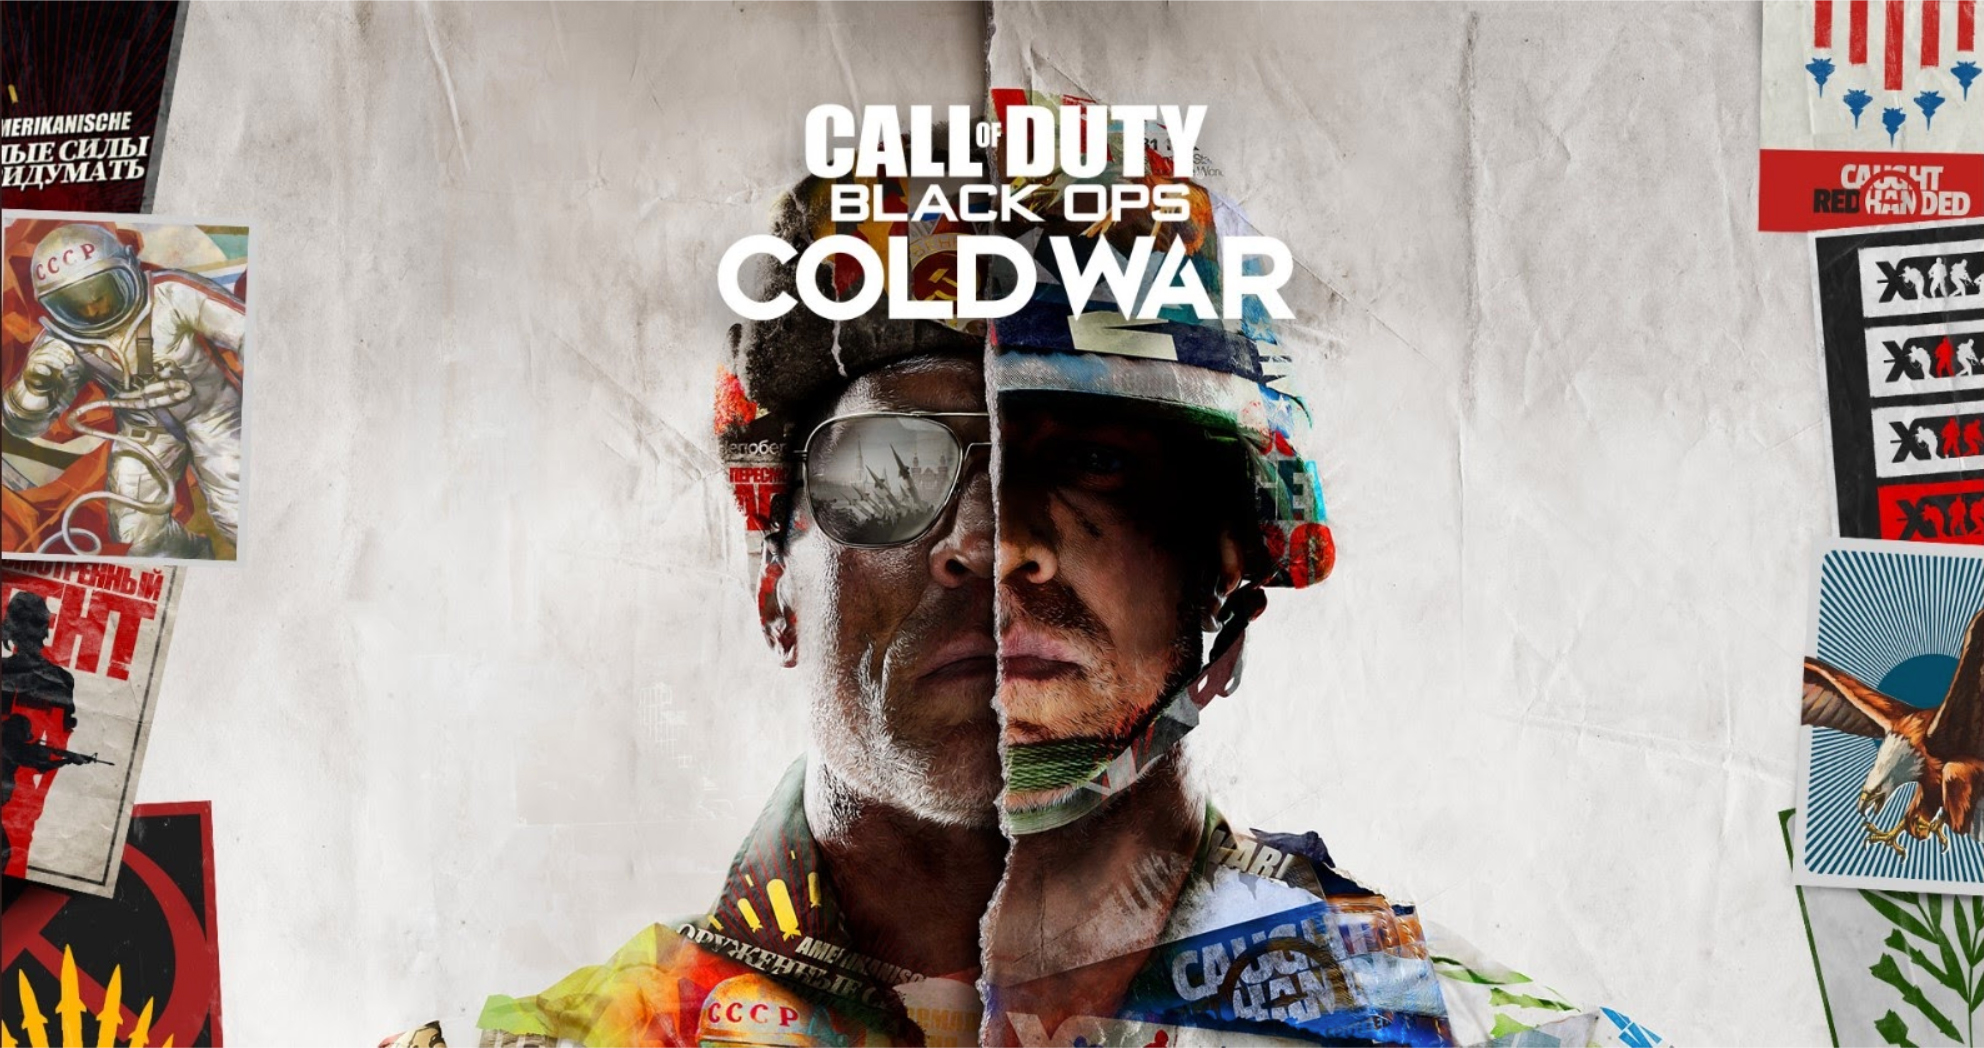 call of duty black ops cold war video game